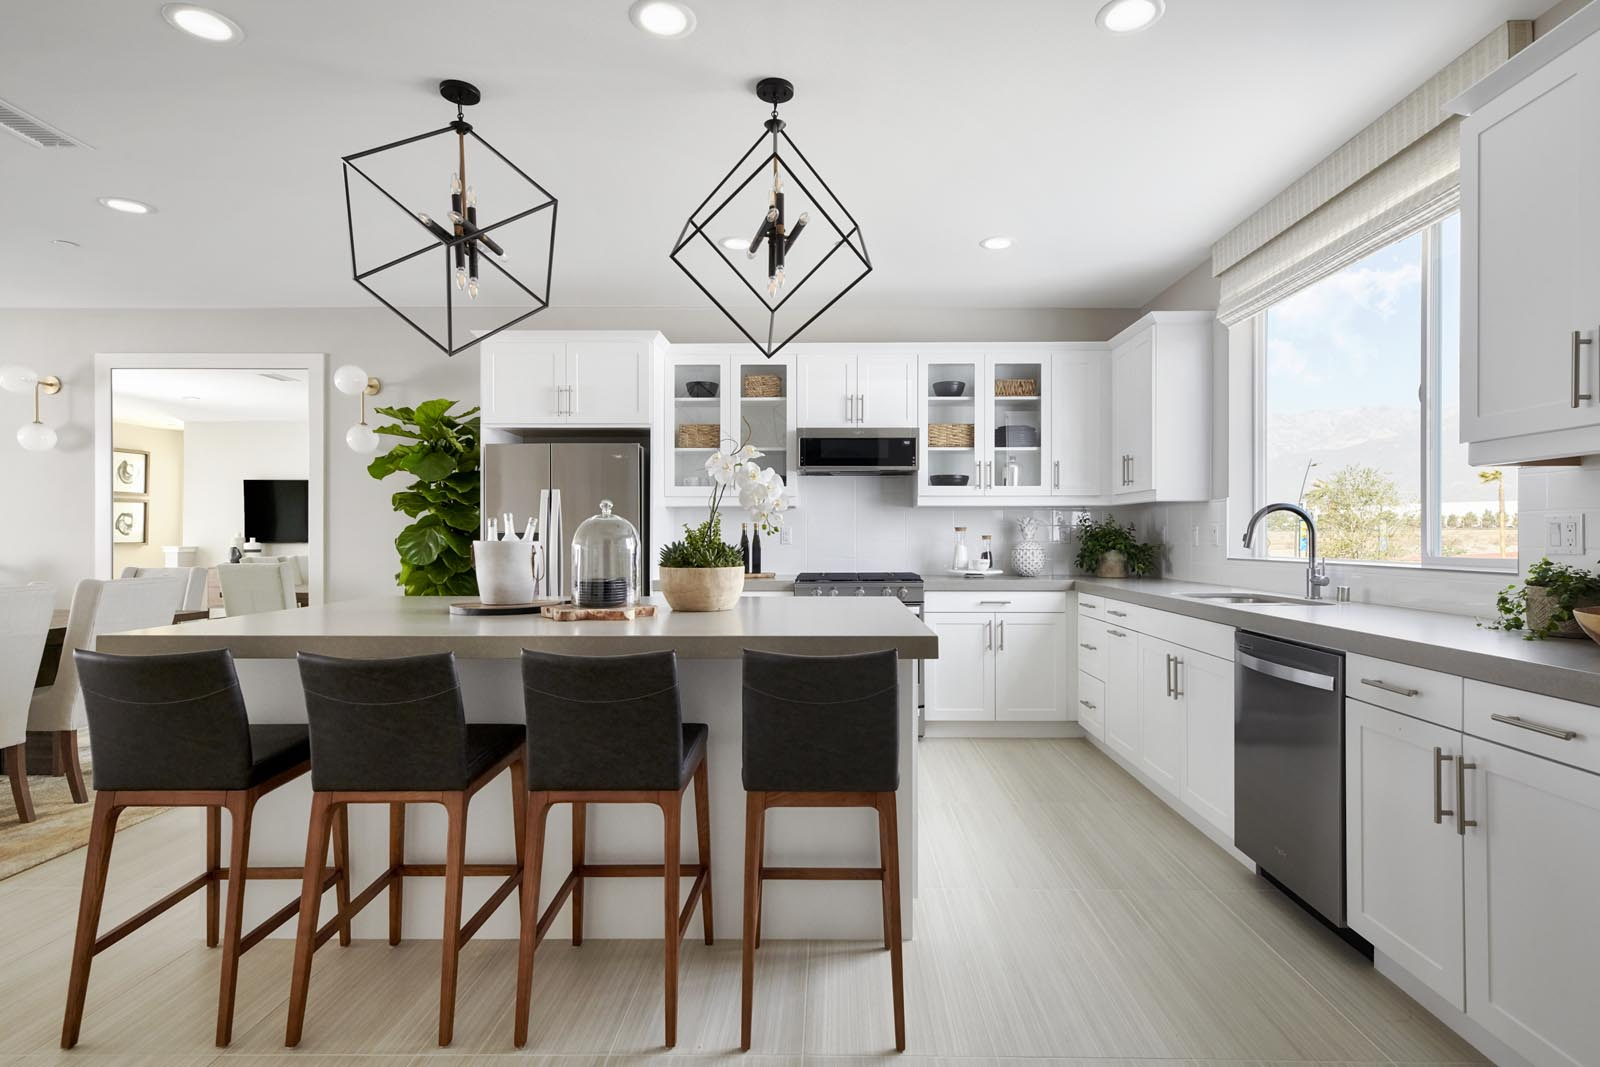 Kitchen   Residence 3   Tempo   New Homes in Rancho Cucamonga, CA   Tri Pointe Homes